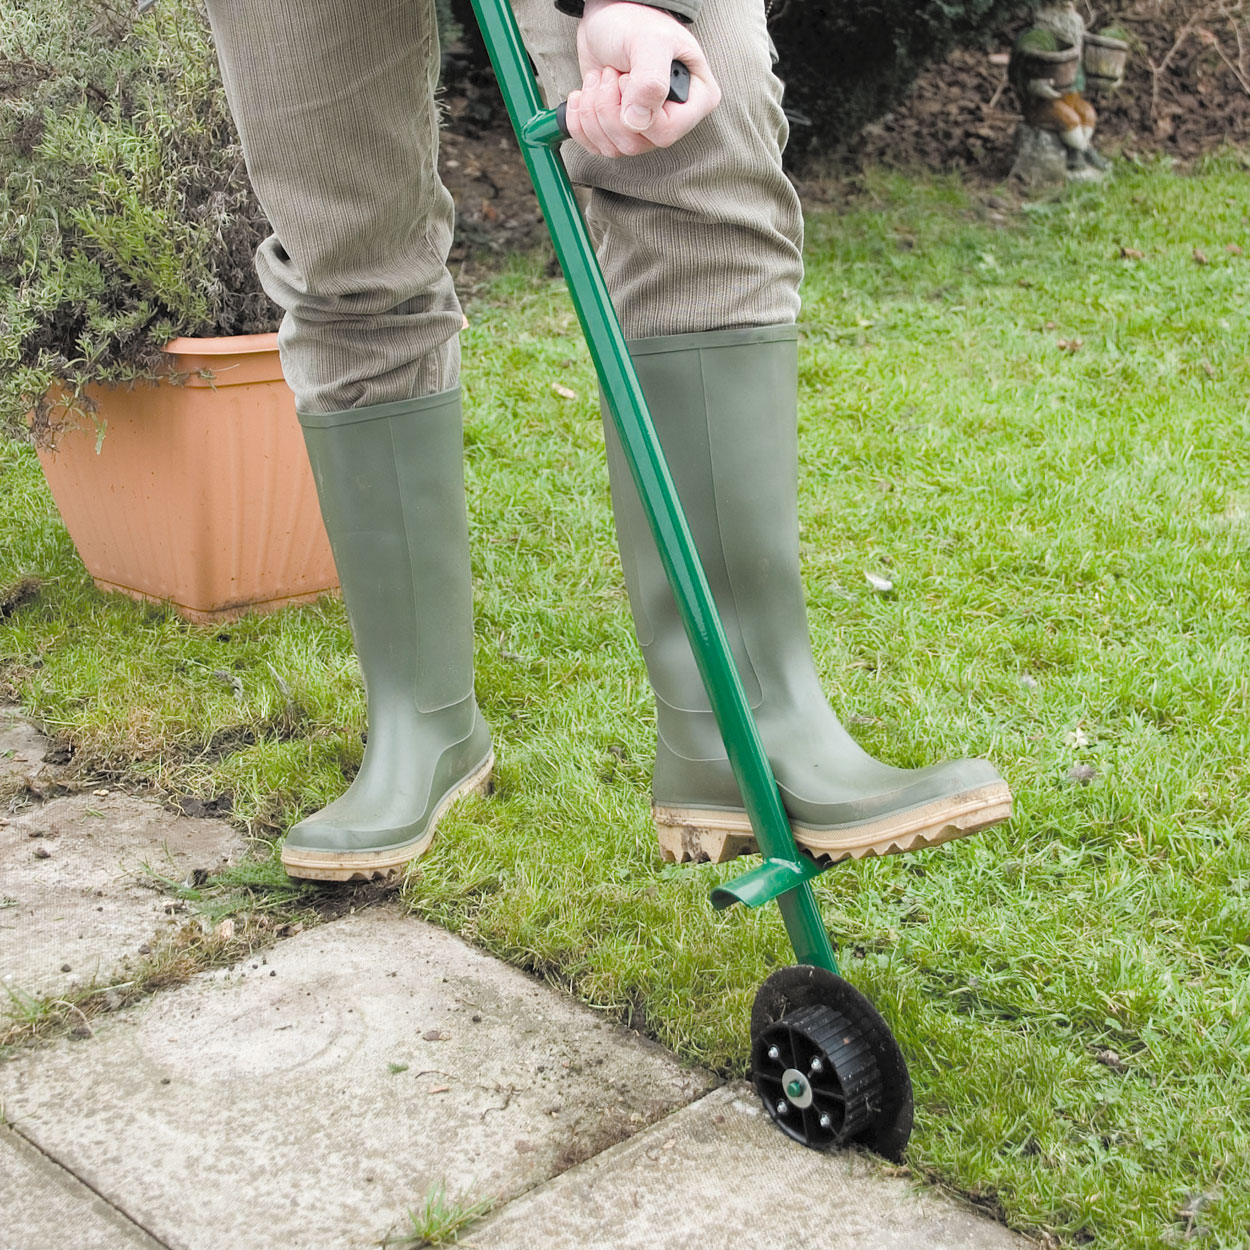 Coopers of Stortford Lawn Edger from Coopers of Stortford